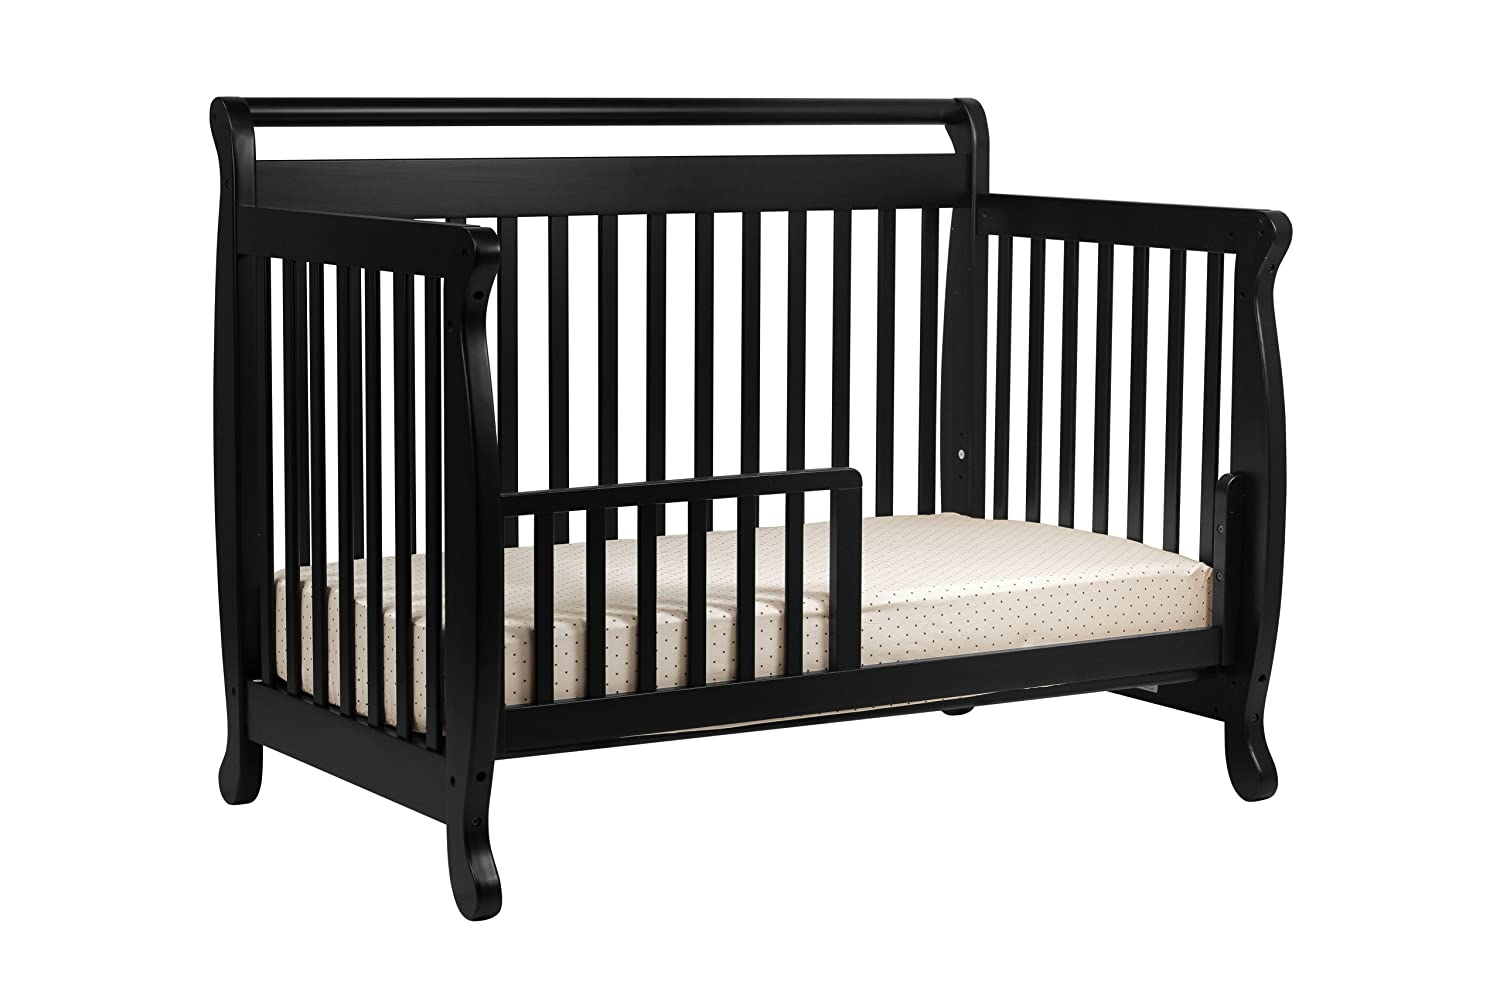 Baby bed hs code - Amazon Com Davinci Emily 4 In 1 Convertible Crib In Ebony Finish Baby Cribs Baby